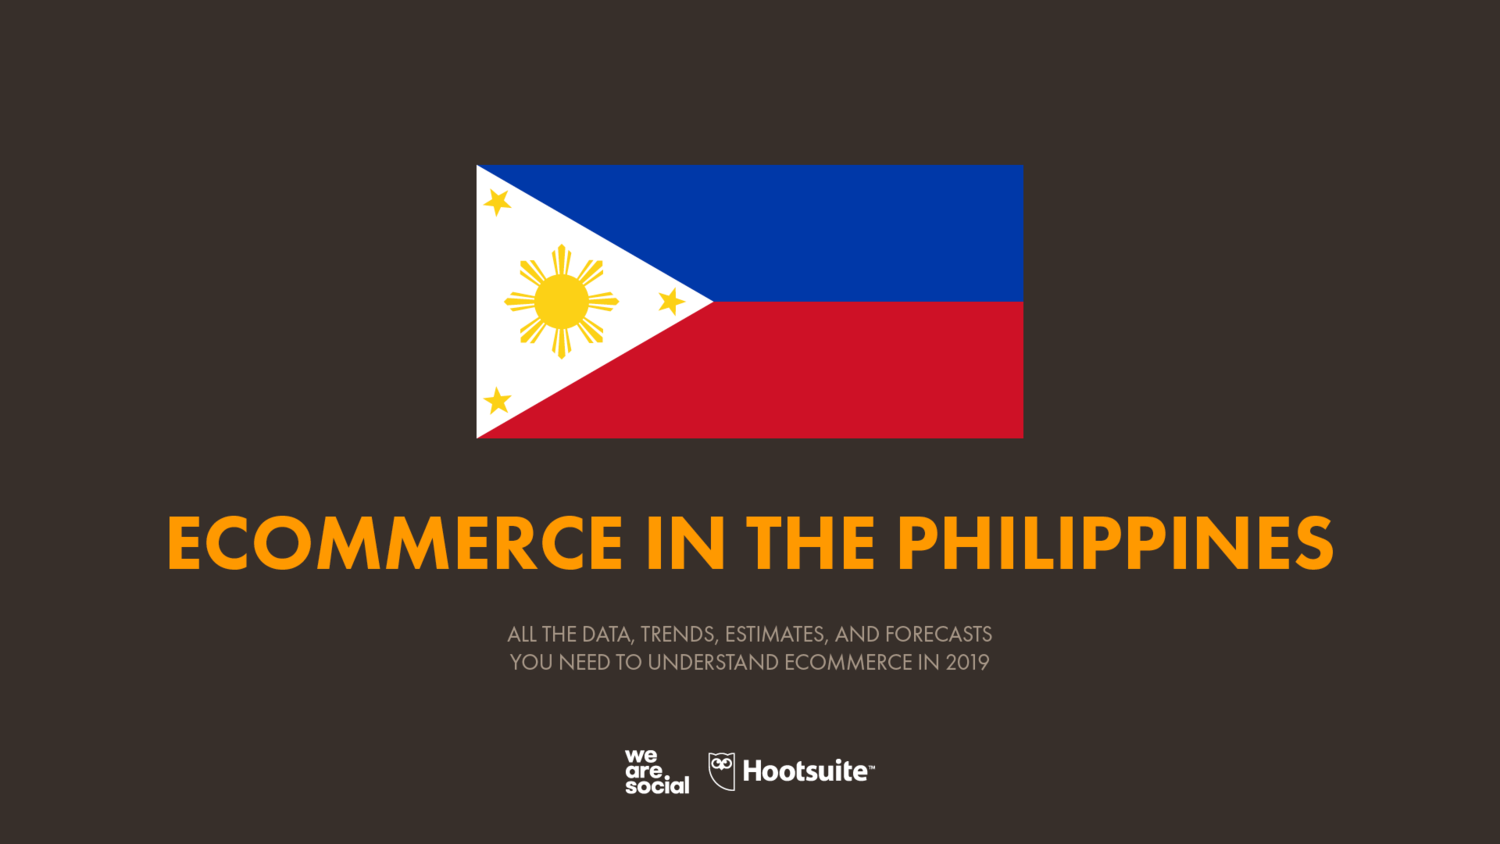 Ecommerce In The Philippines In 2019 Datareportal Global